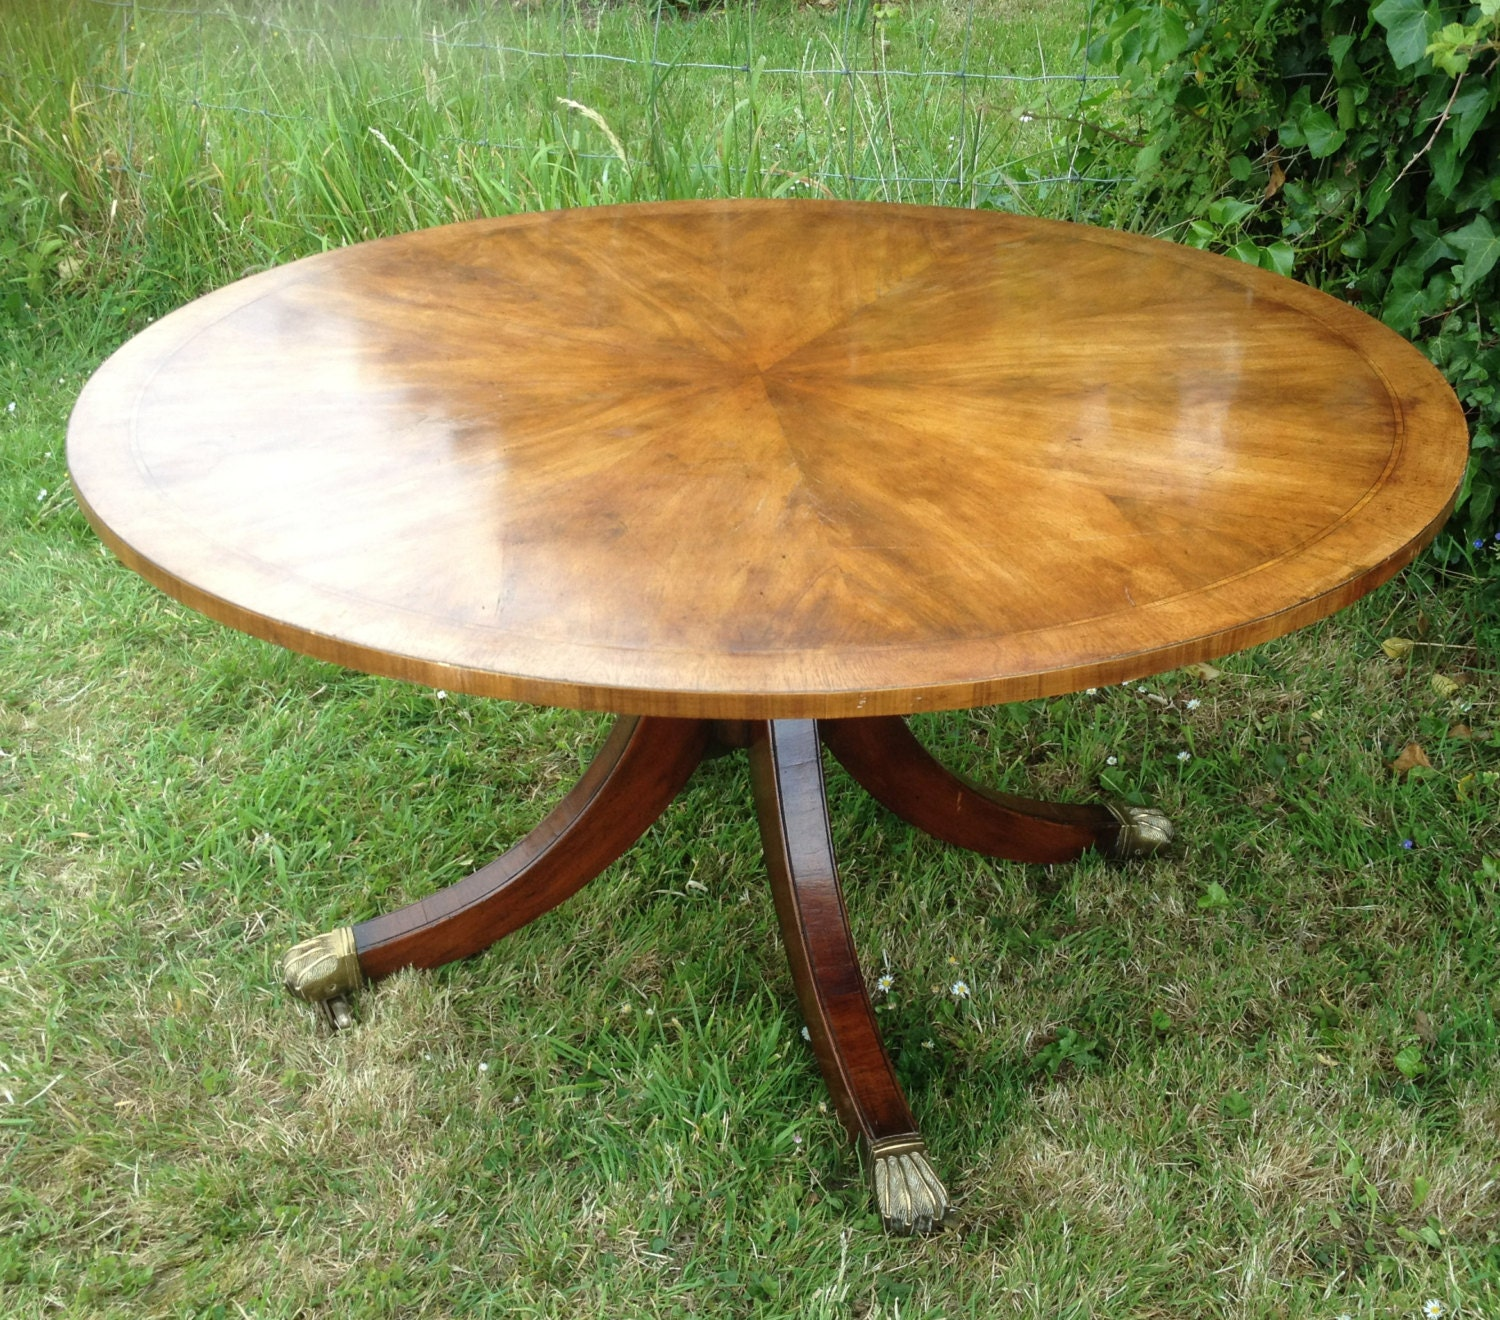 Vintage 1920 1930s Large Round Walnut Coffee Table With Lion Paw Caster Wheels Handmade Haute